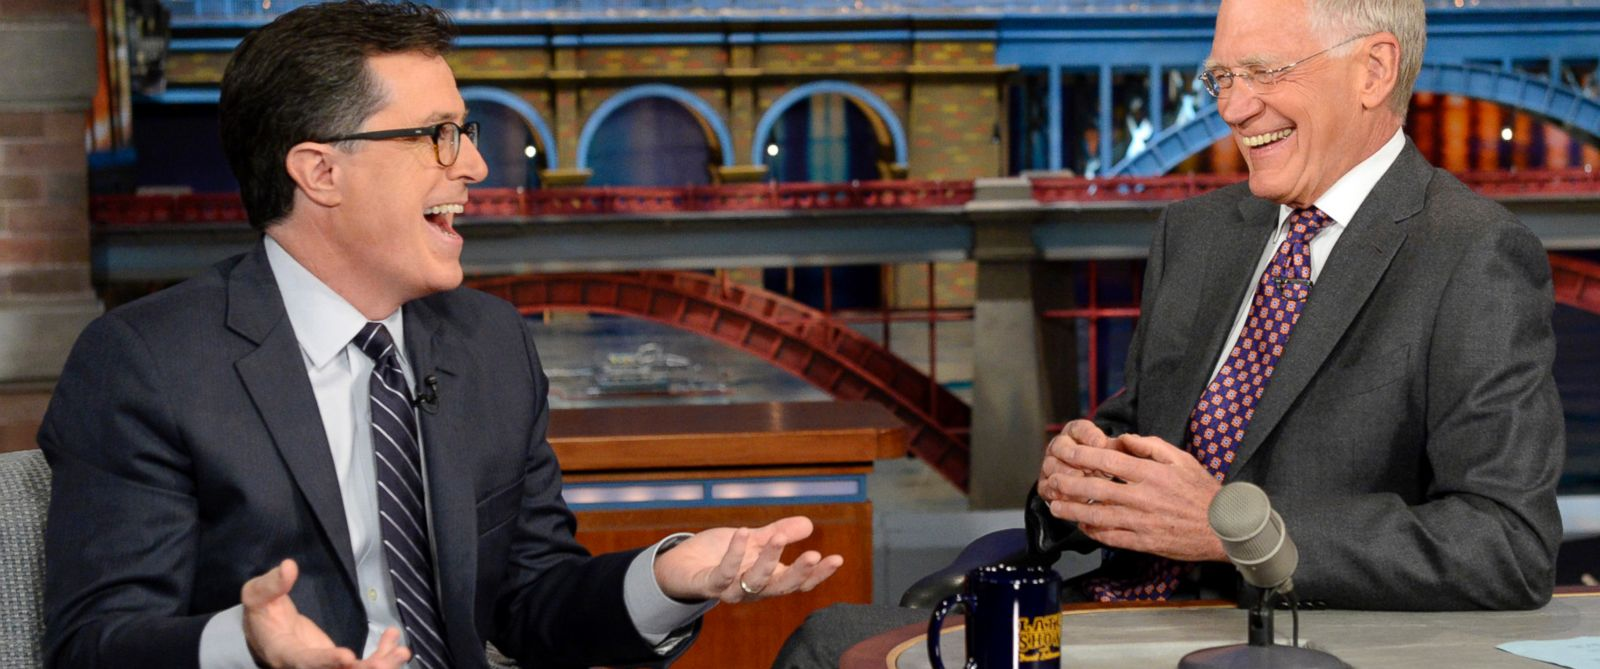 """PHOTO: Stephen Colbert, left, joins host David Letterman on the set of """"Late Show with David Letterman,"""" April 22, 2014, in New York."""